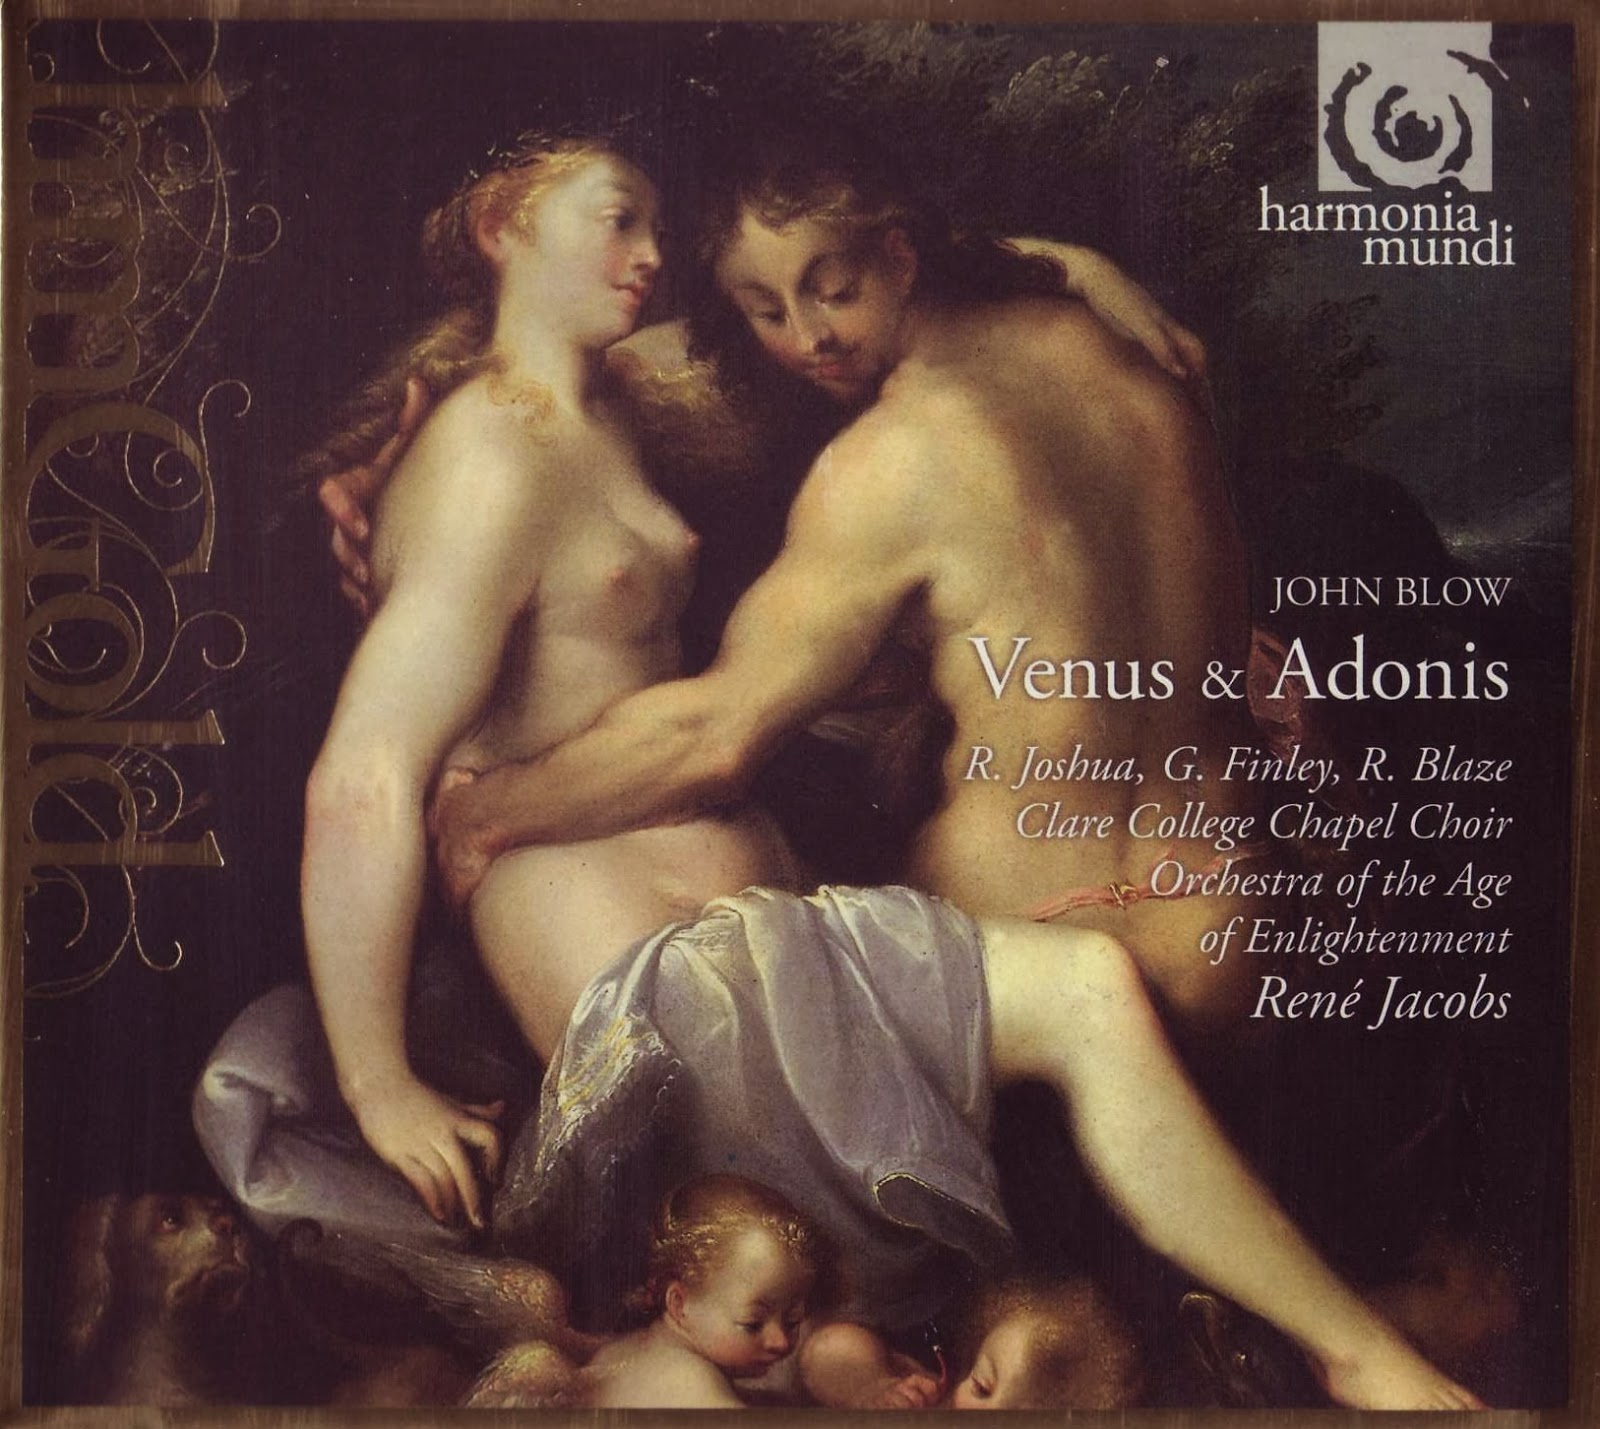 an analysis of digressions in venus and adonis and hero and leander Analysis of sonnet 12 sonnet essays analysis of digressions in venus and adonis and hero and leander digressions in venus.